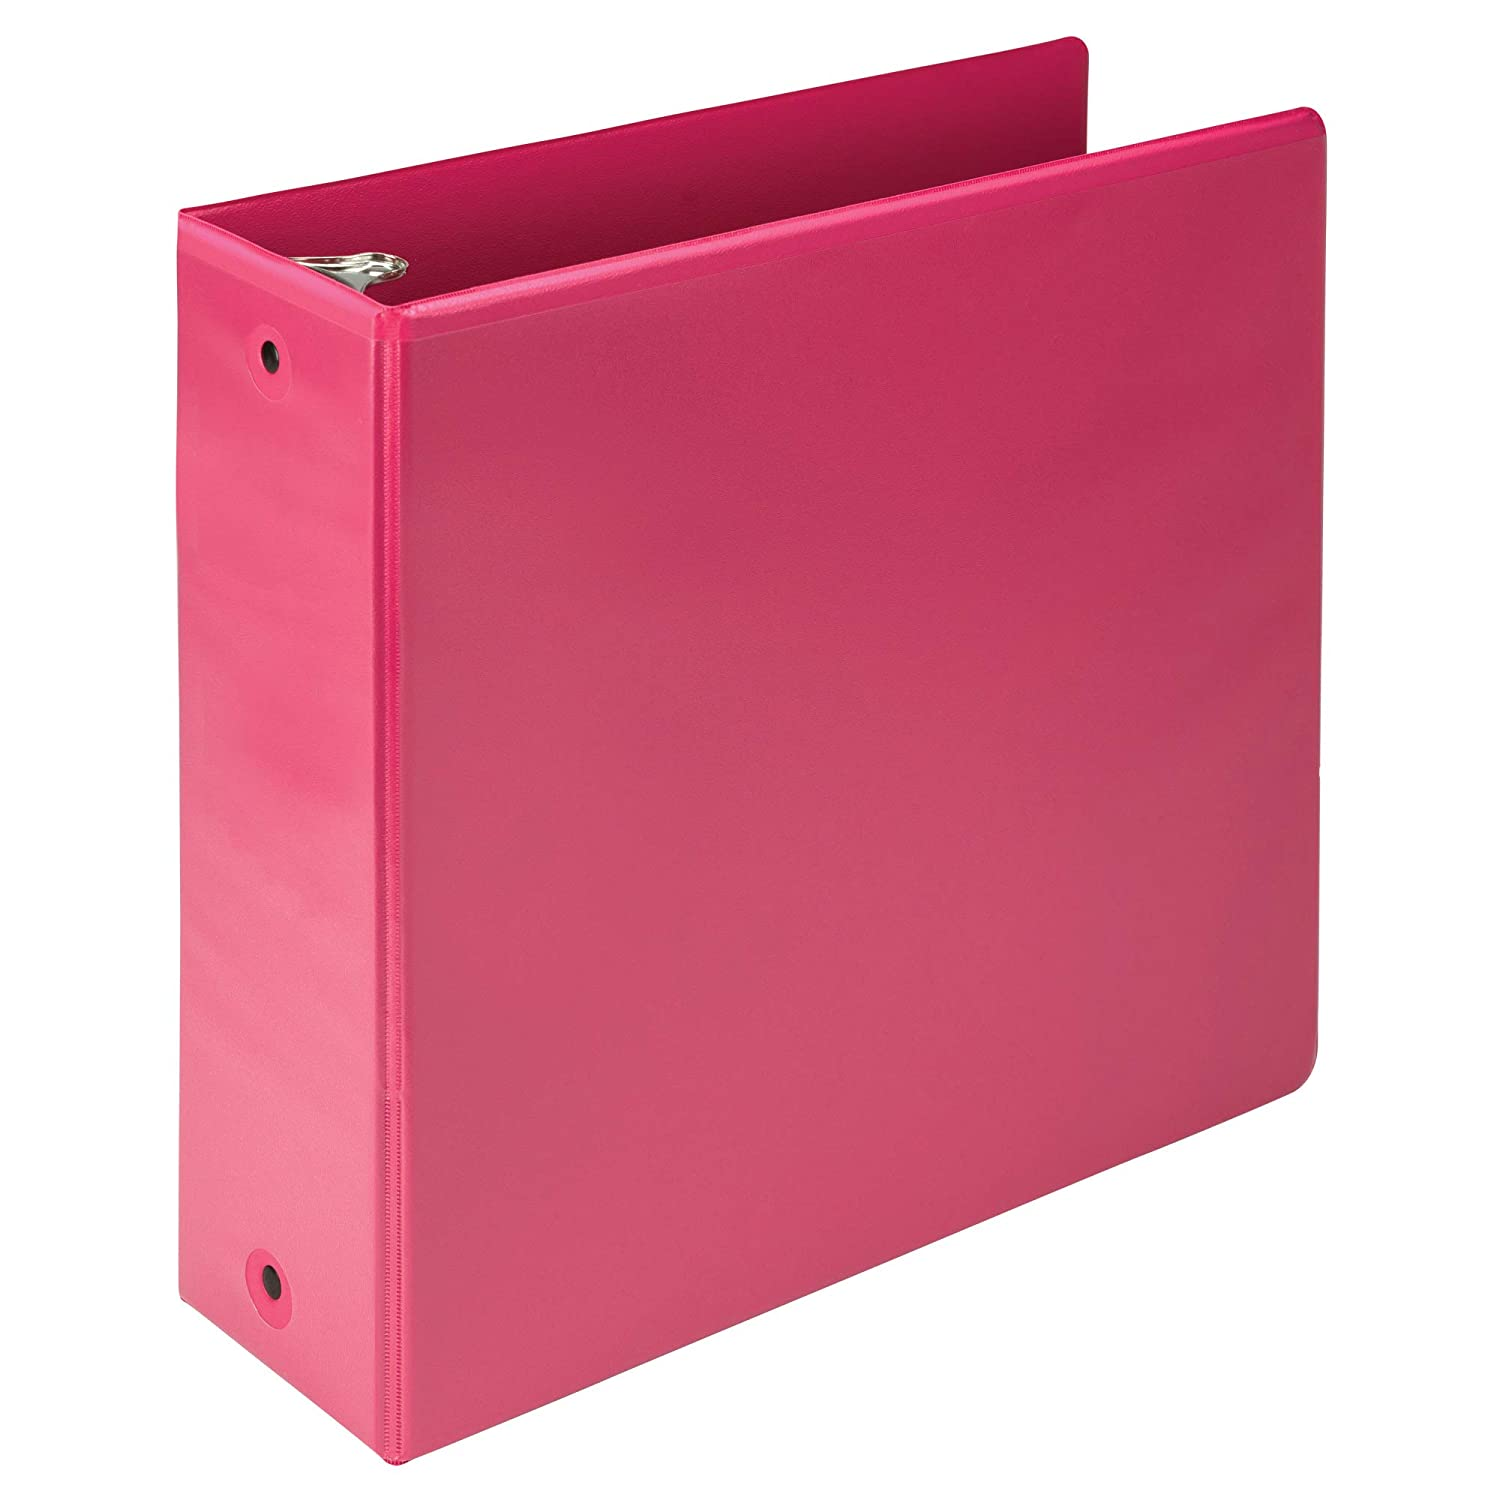 Samsill Earth's Choice Biobased 3 Ring View Binders, 4 Inch Round Ring, Up to 25% Plant Based Plastic, USDA Certified Biobased, Customizable Cover, Berry Pink